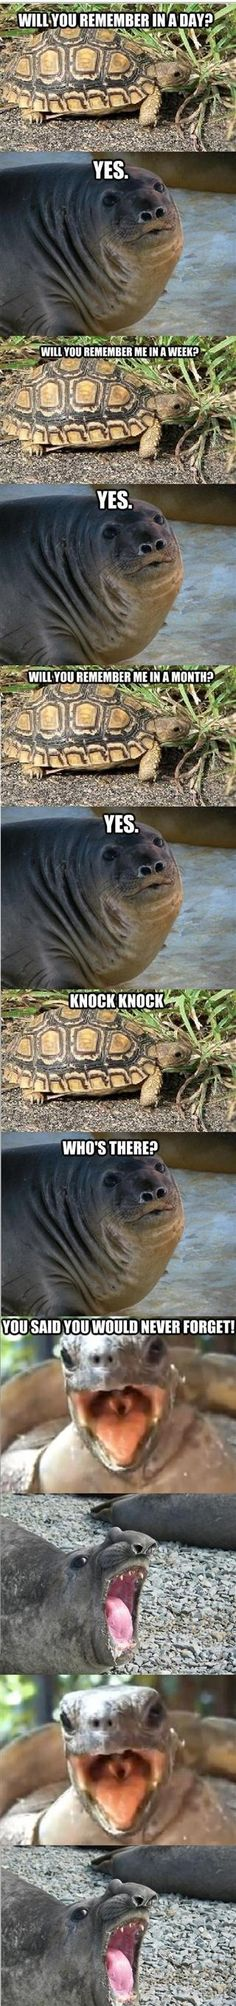 Ideas funny pictures cant stop laughing lol haha Funny Animal Jokes, Cute Funny Animals, Funny Animal Pictures, Animal Memes, Funny Cute, The Funny, Funny Images, Funny Pics, Super Funny